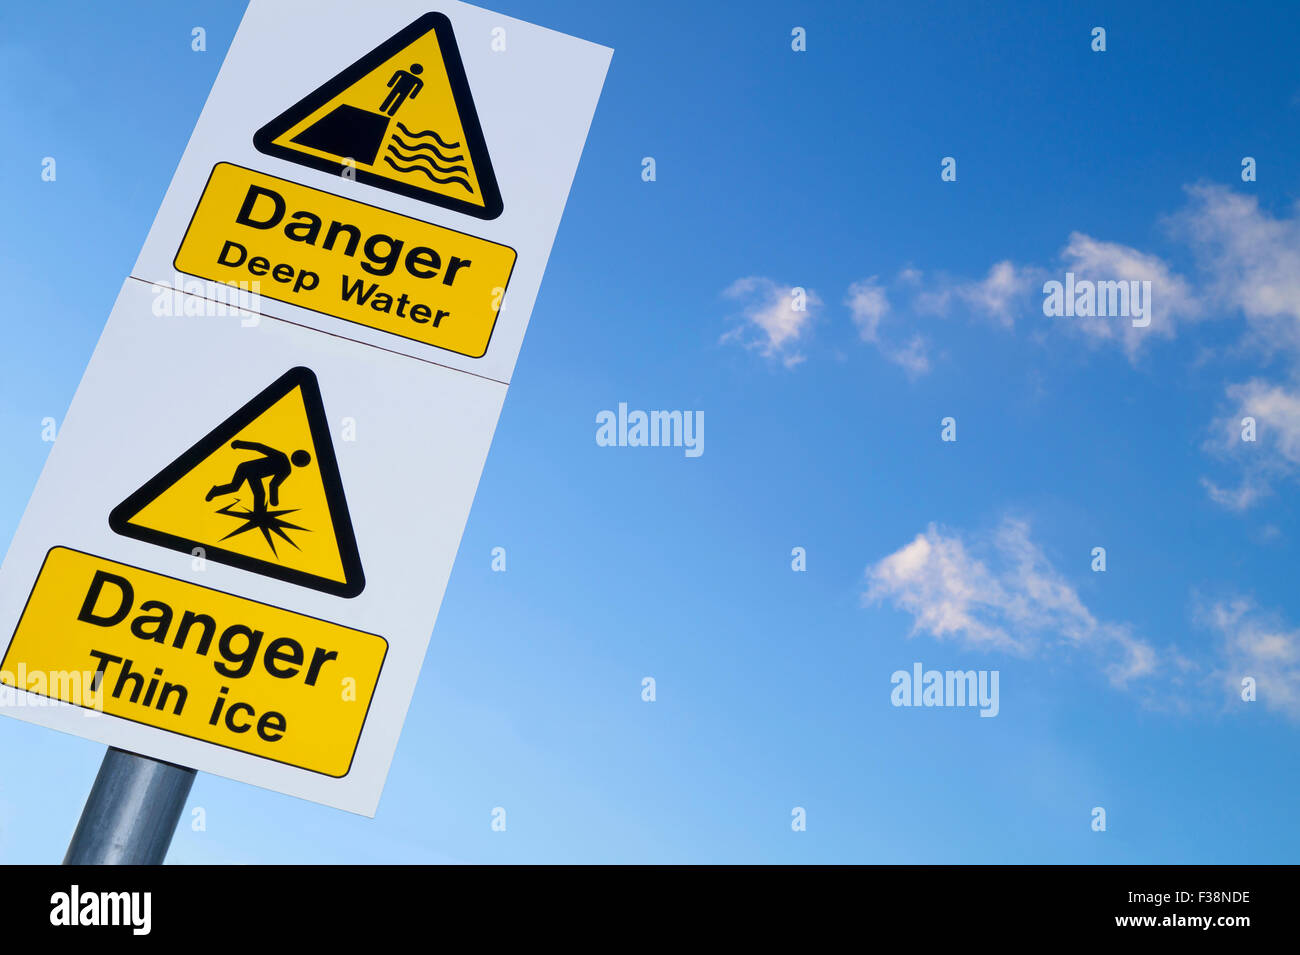 Sign showing danger of deep water and thin ice - Stock Image